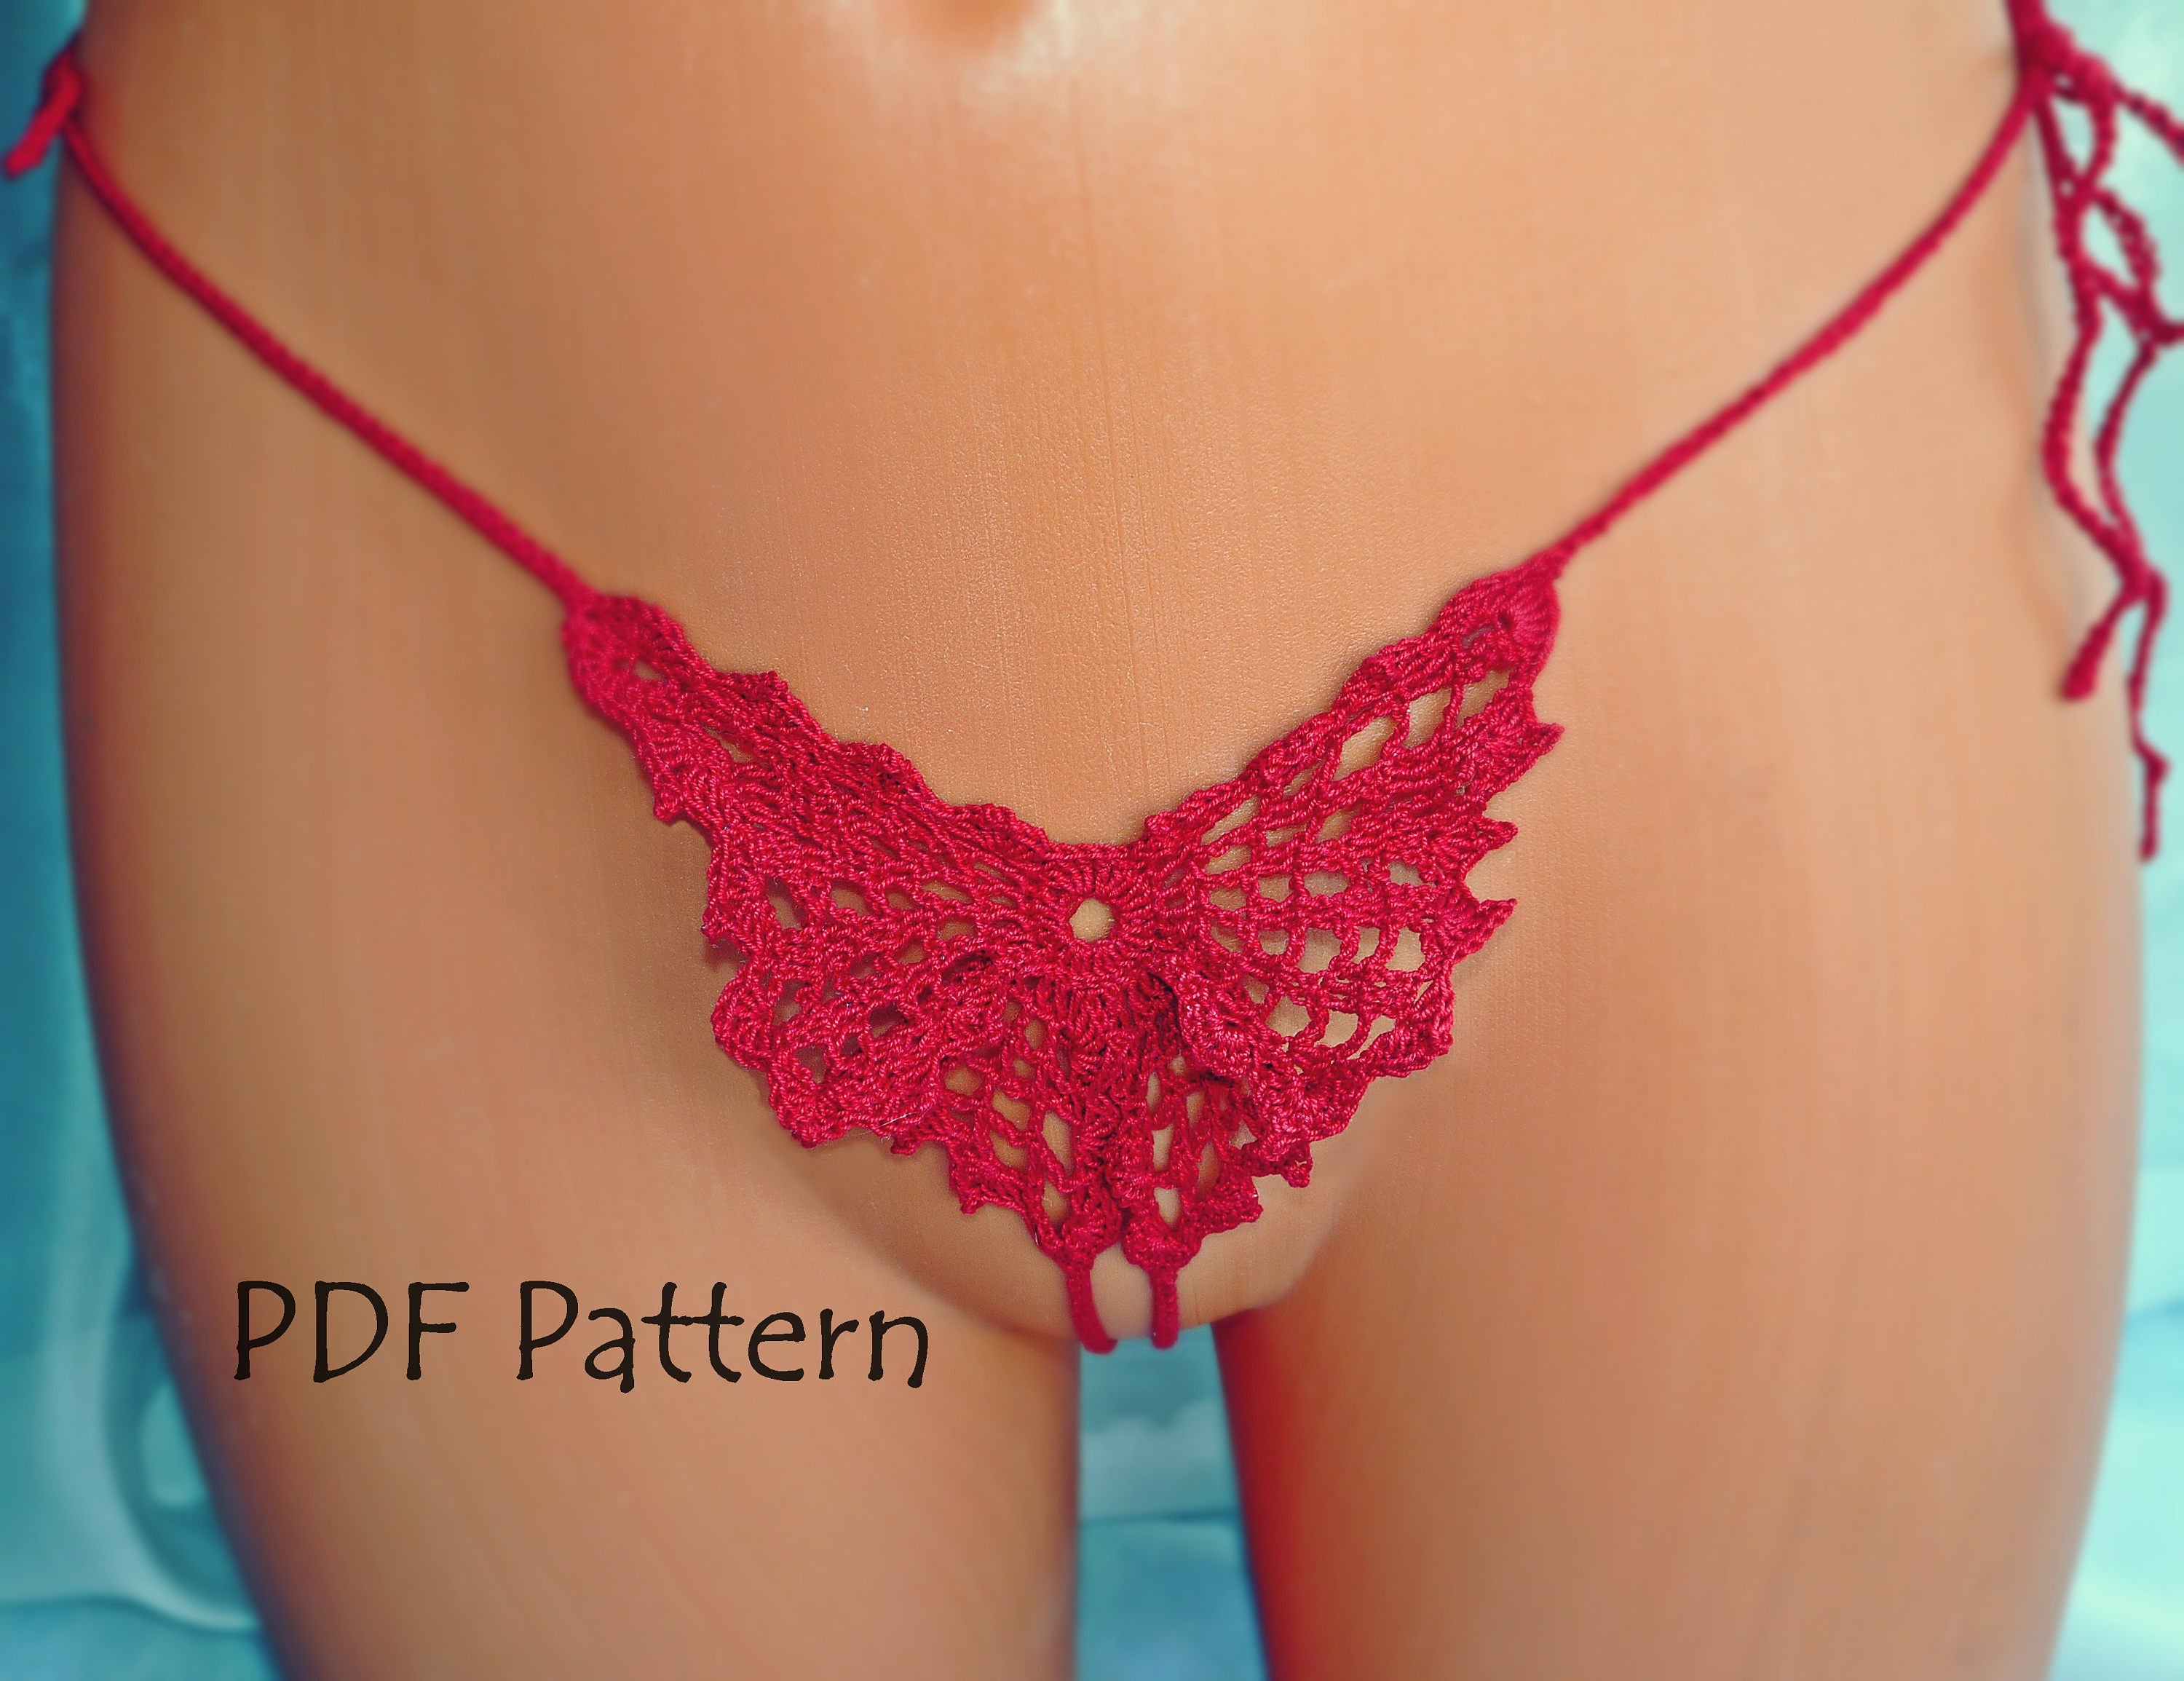 Gstring bikini patterns